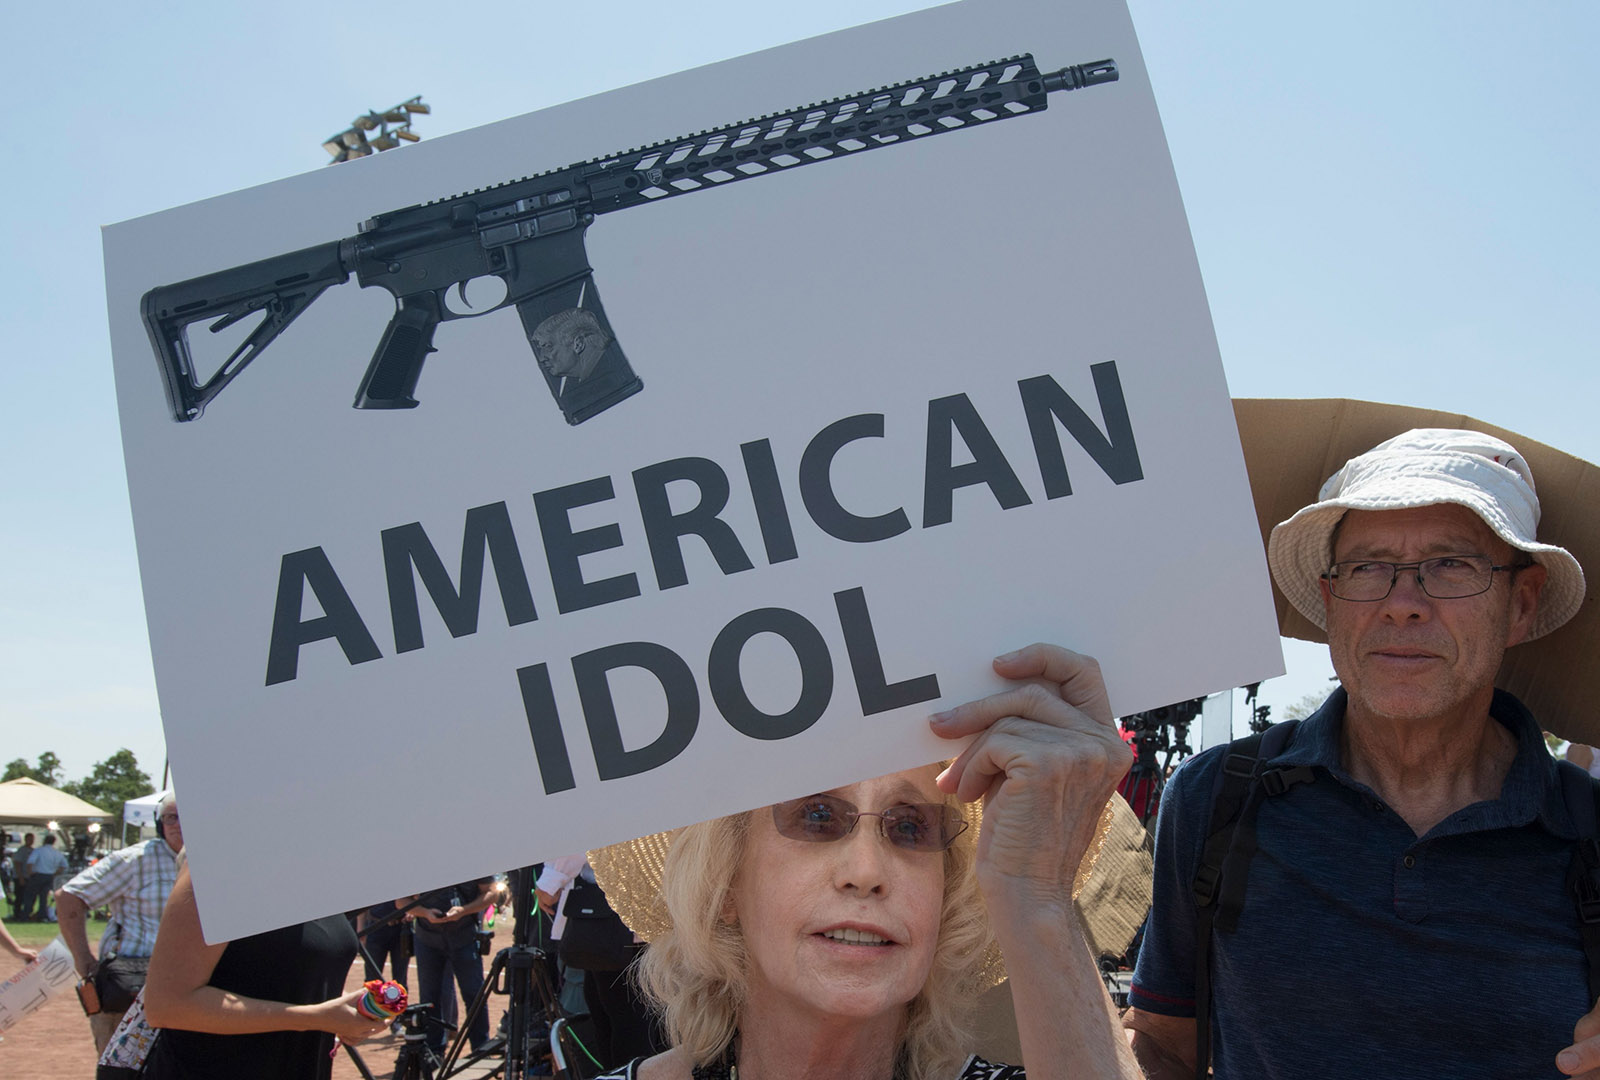 El Paso residents protesting the visit of President Donald Trump after the Walmart mass shooting that left twenty-two people dead, Texas, August 7, 2019